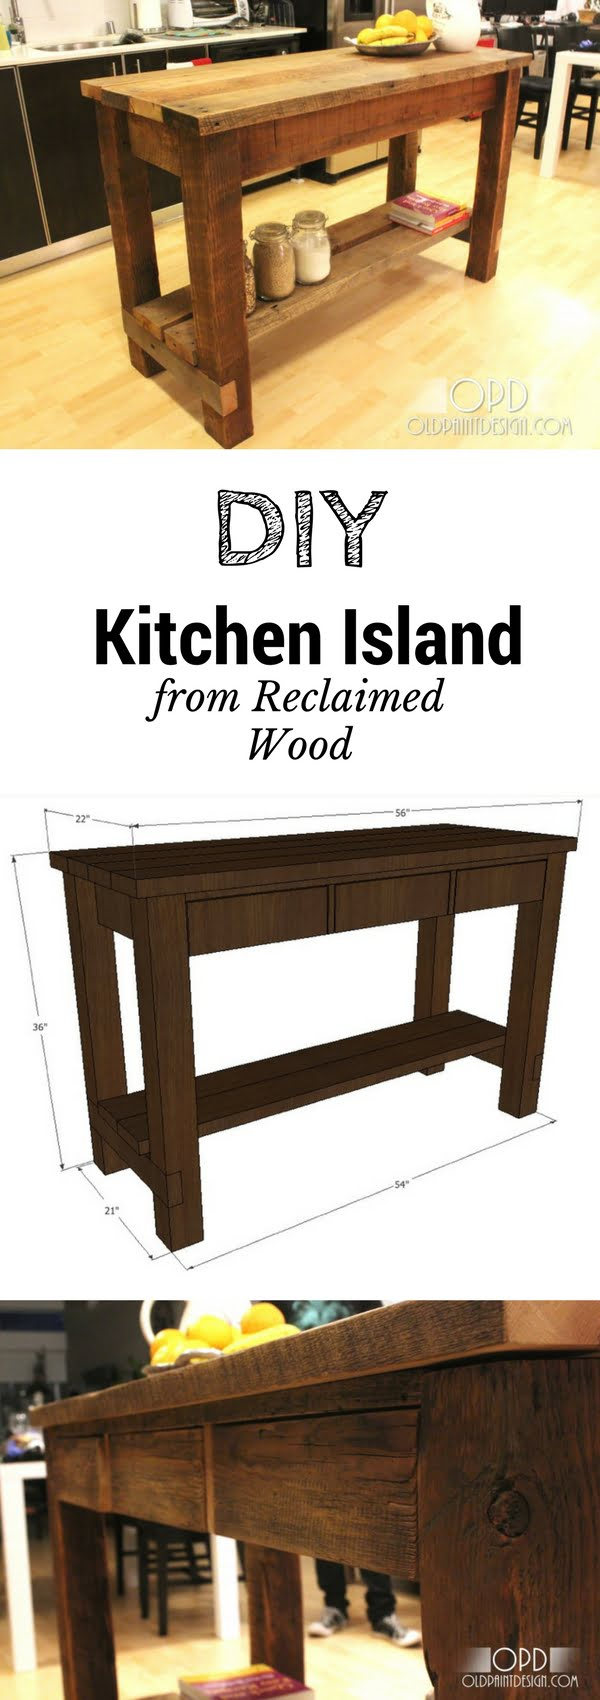 25 Easy DIY Kitchen Island Ideas That You Can Build on a Budget - Check out the tutorial on how to build a DIY reclaimed wood kitchen island